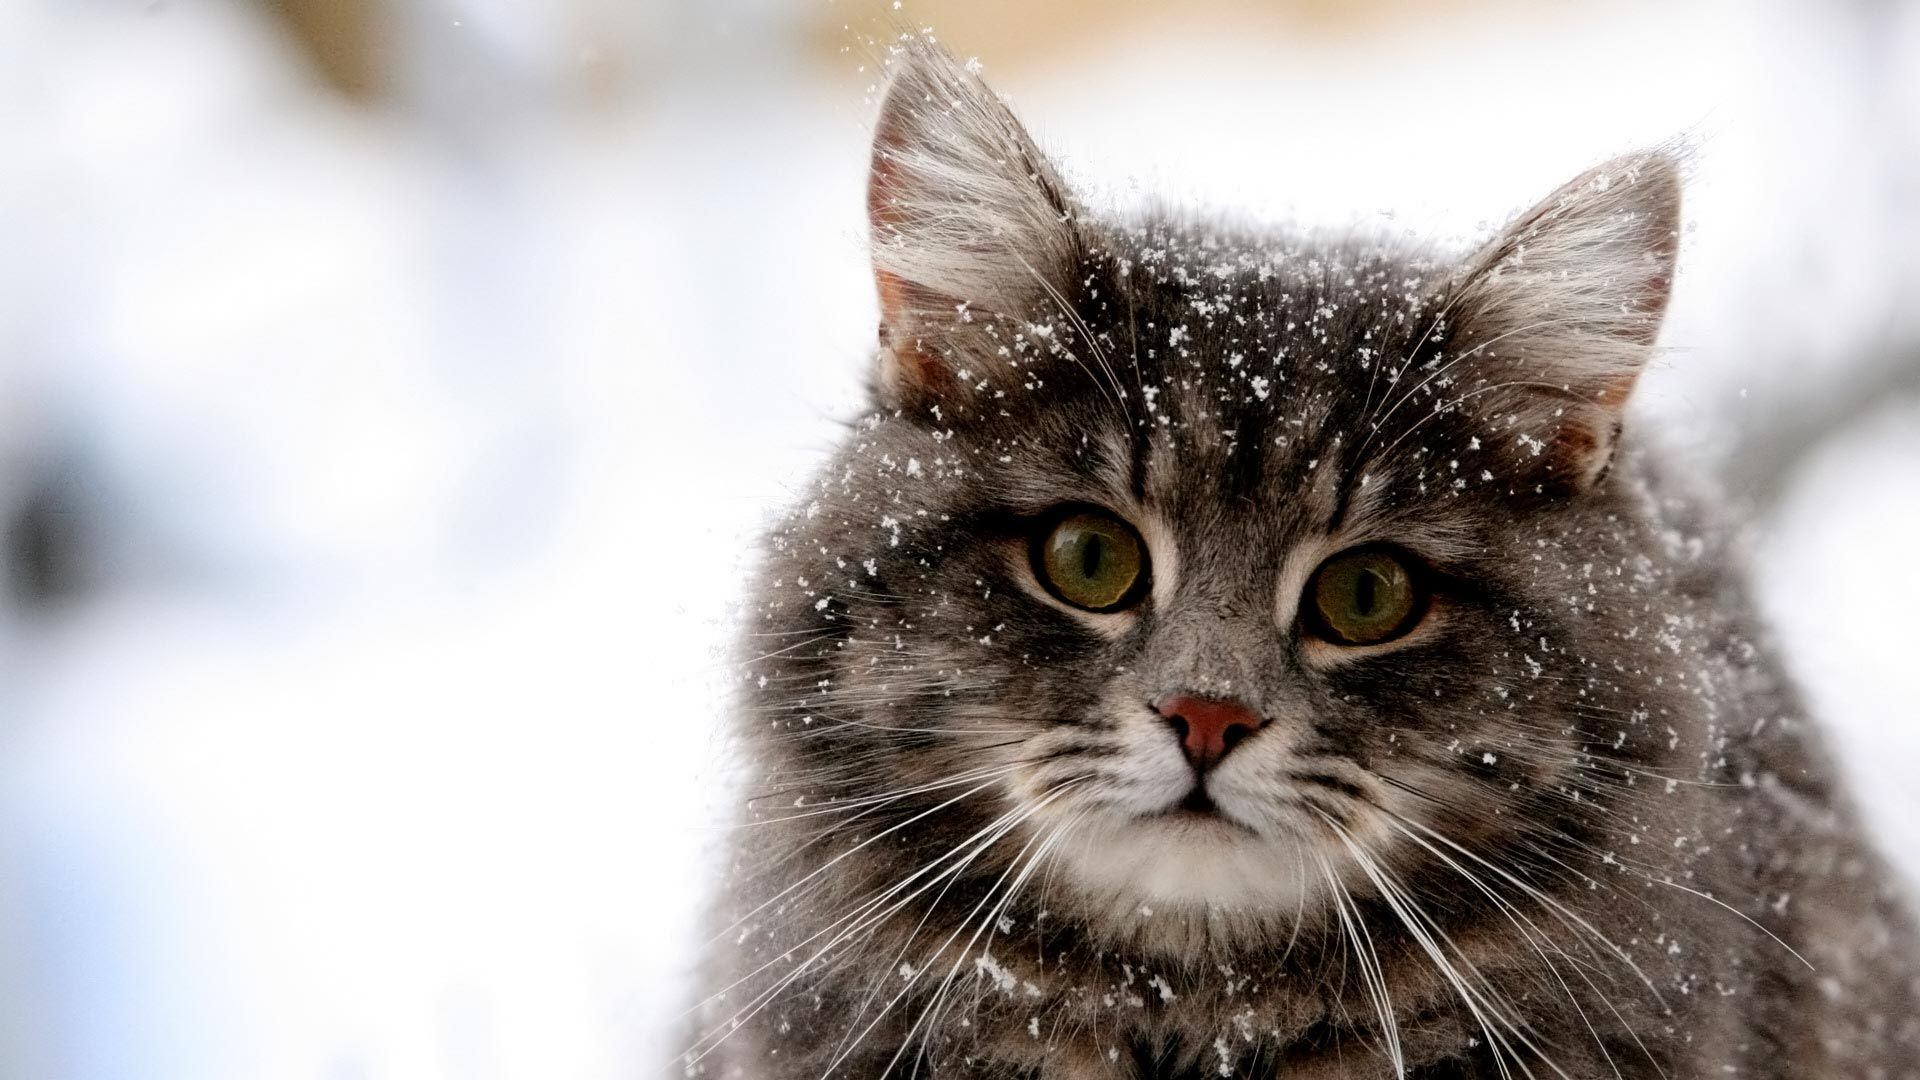 Cats In Winter Wallpaper Wallpapersafari Beautiful Cats Kittens Cutest American Bobtail Cat